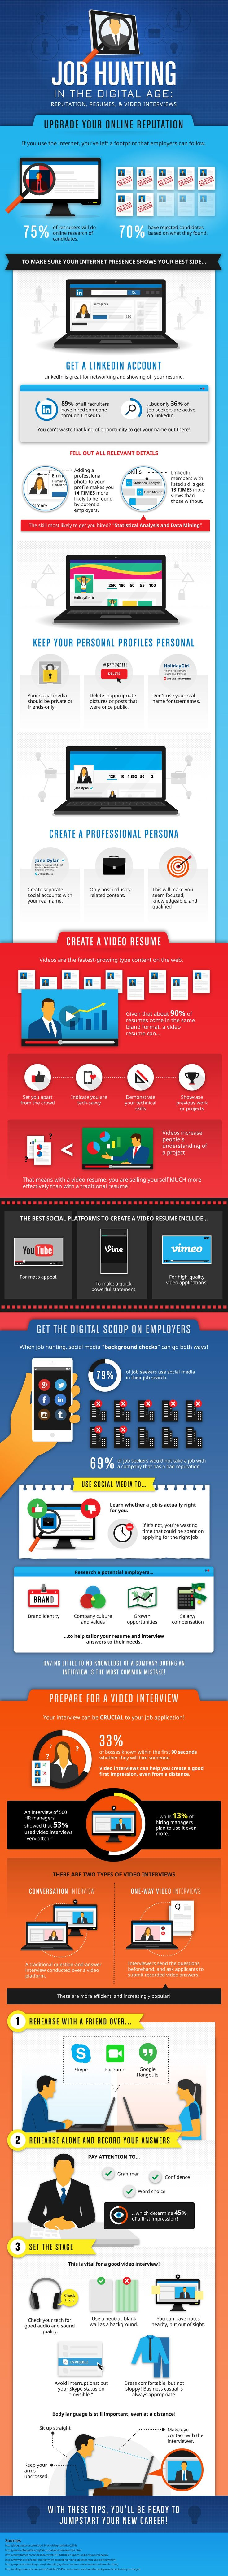 Delightful Awesome Job Hunting In The Digital Age: Reputation, Resumes U0026 Video  Interviews [Infographic